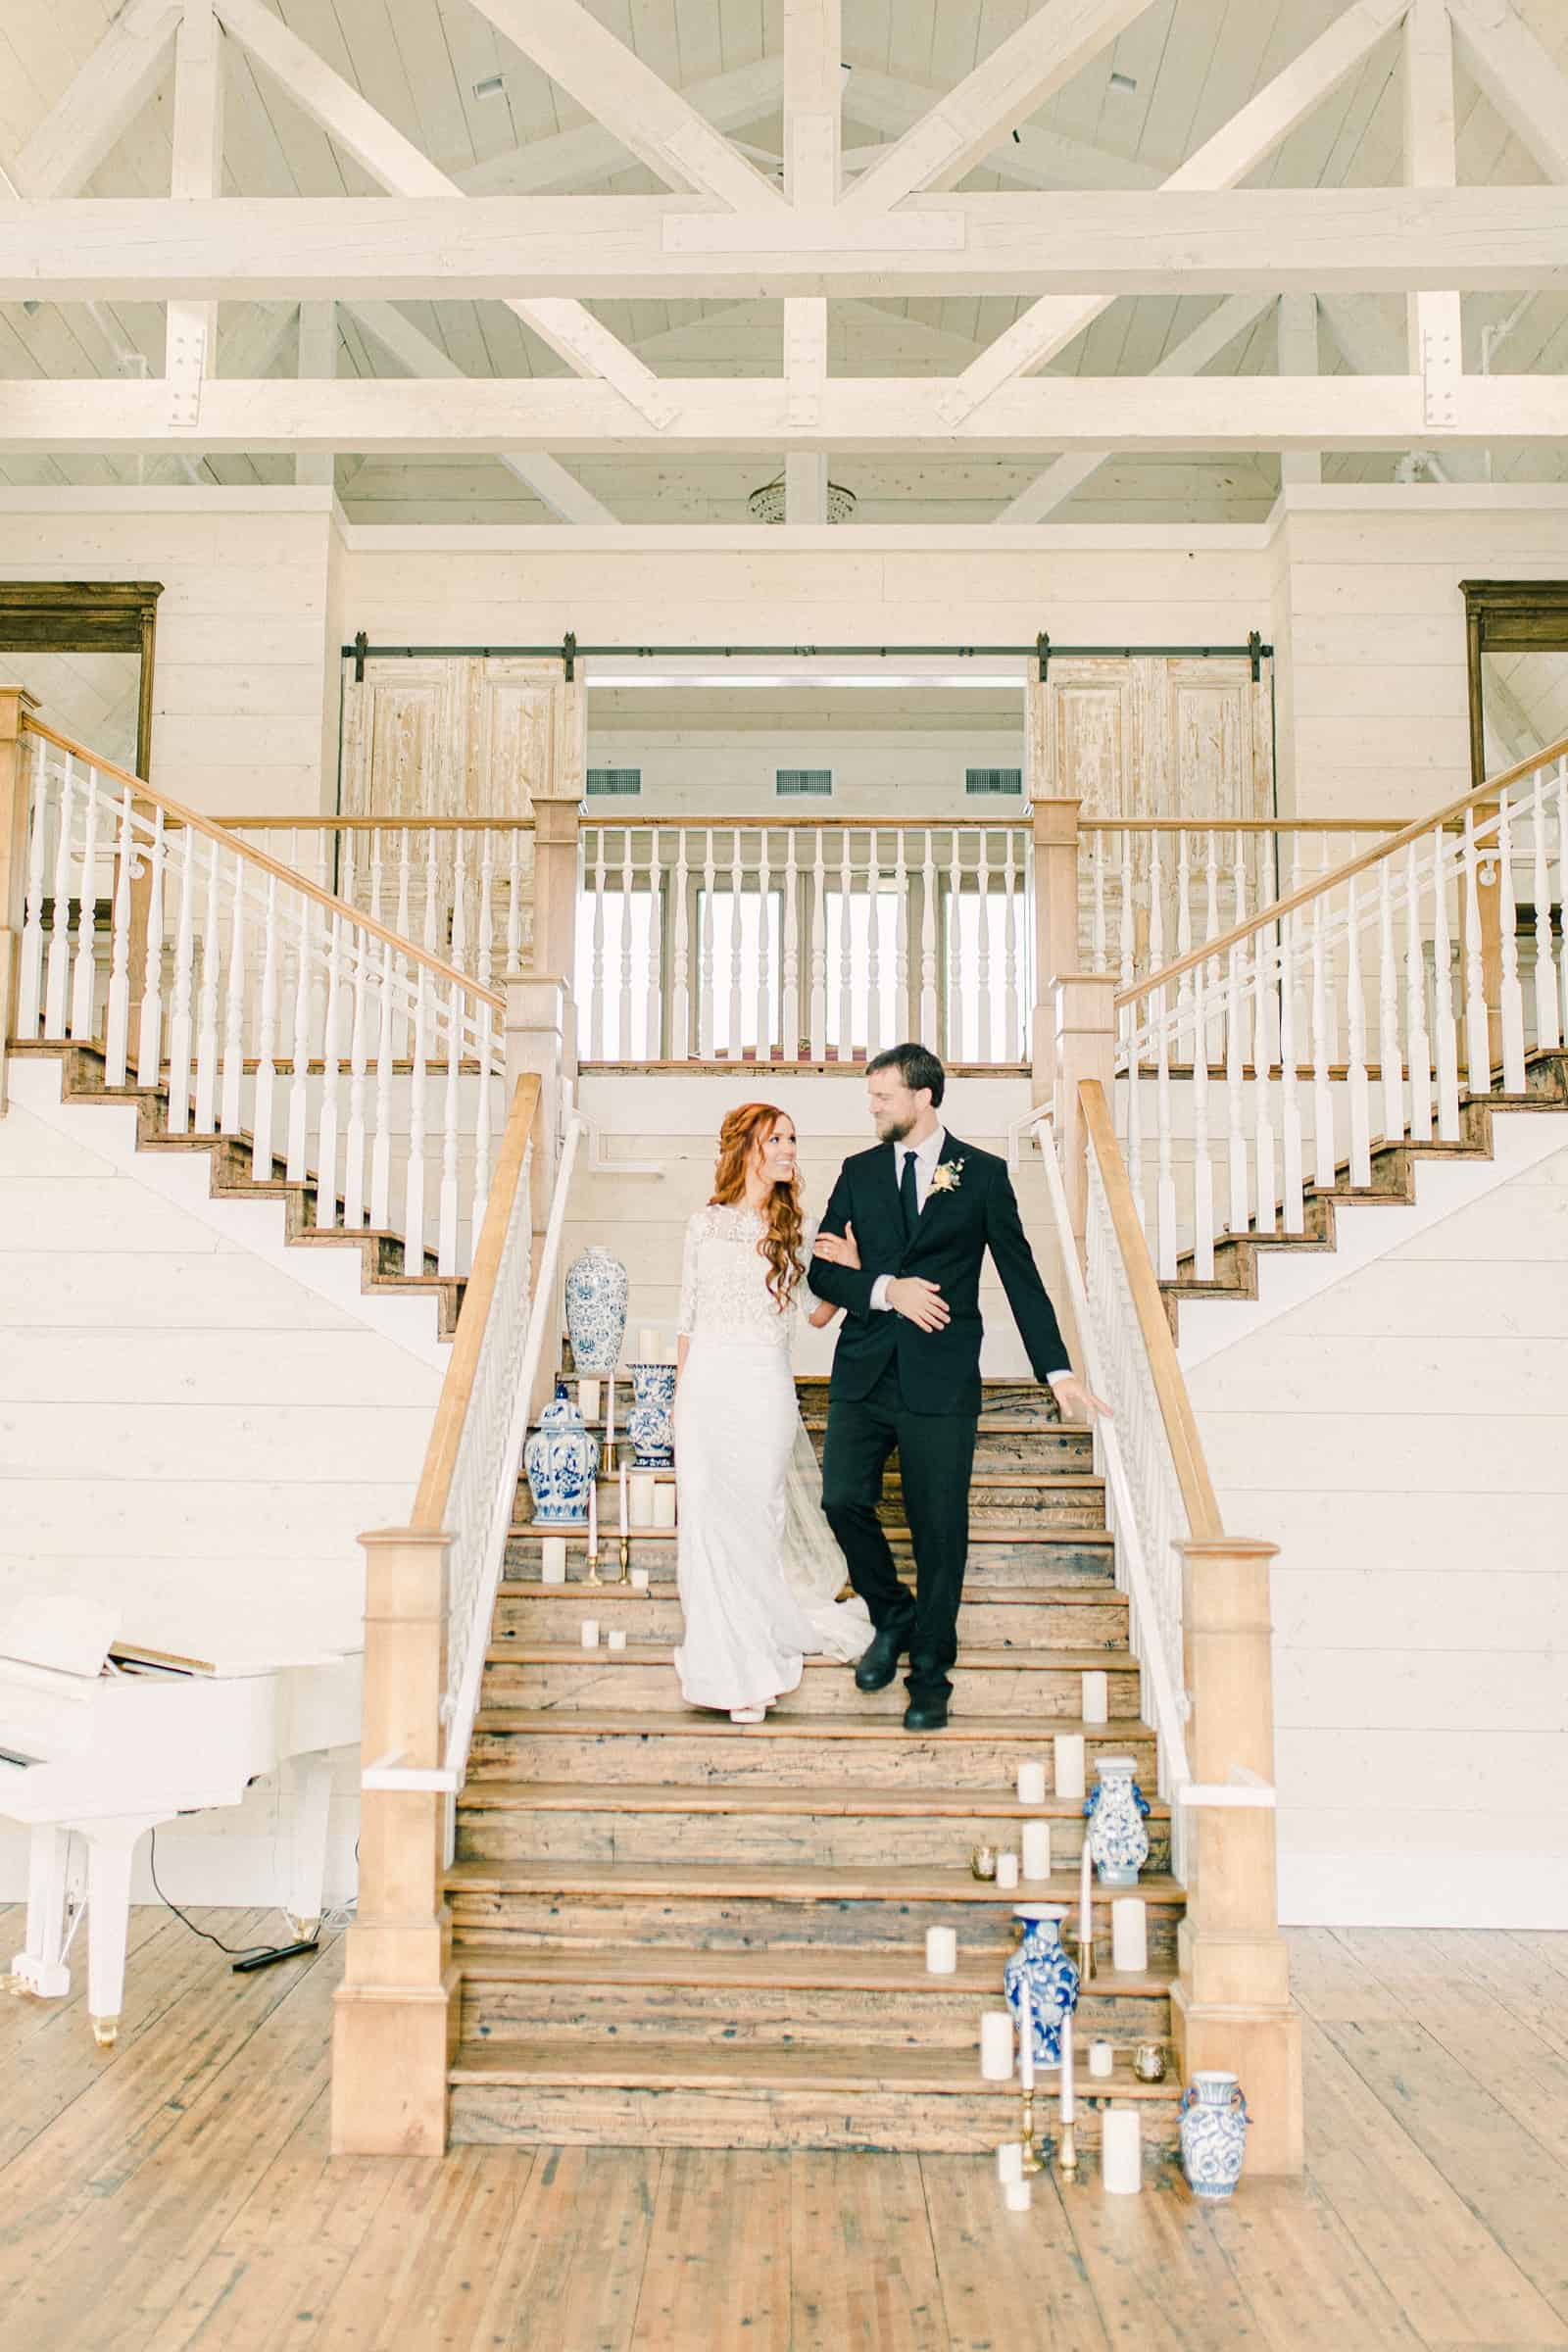 Bride and groom walk down staircase at Walker Farms, Utah white barn modern wedding venue